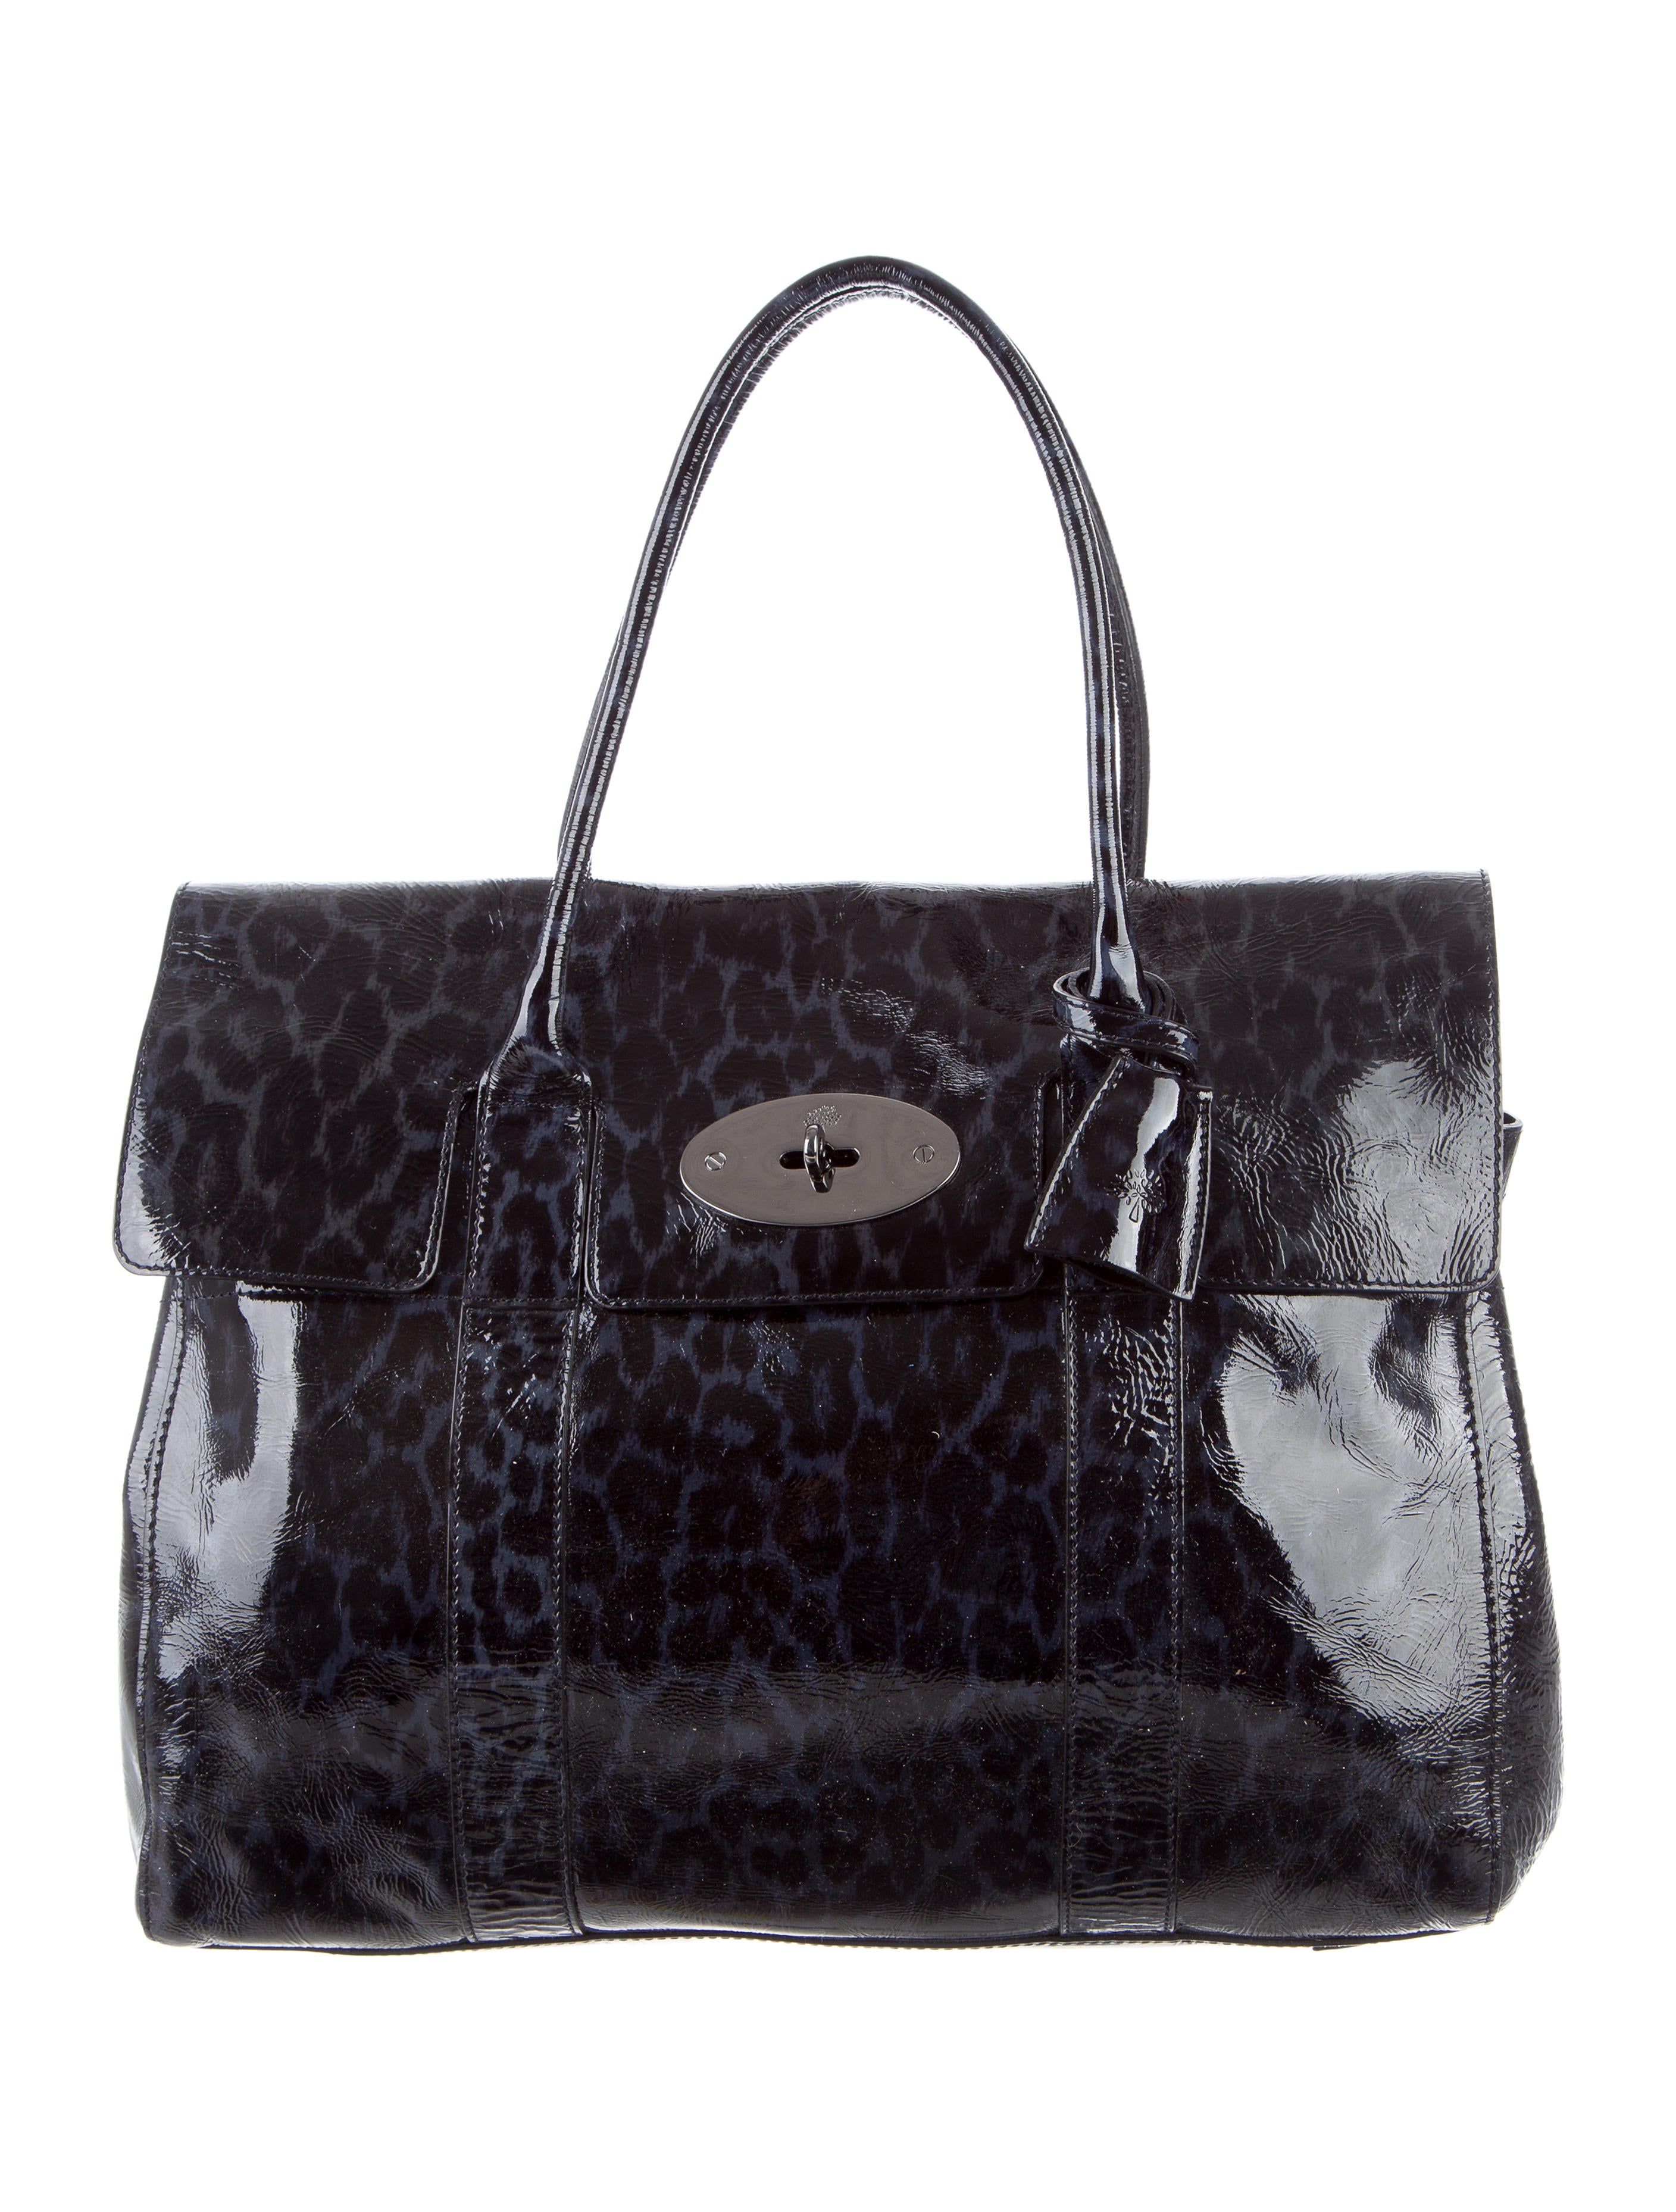 Mulberry patent leather bayswater bag handbags for The bayswater